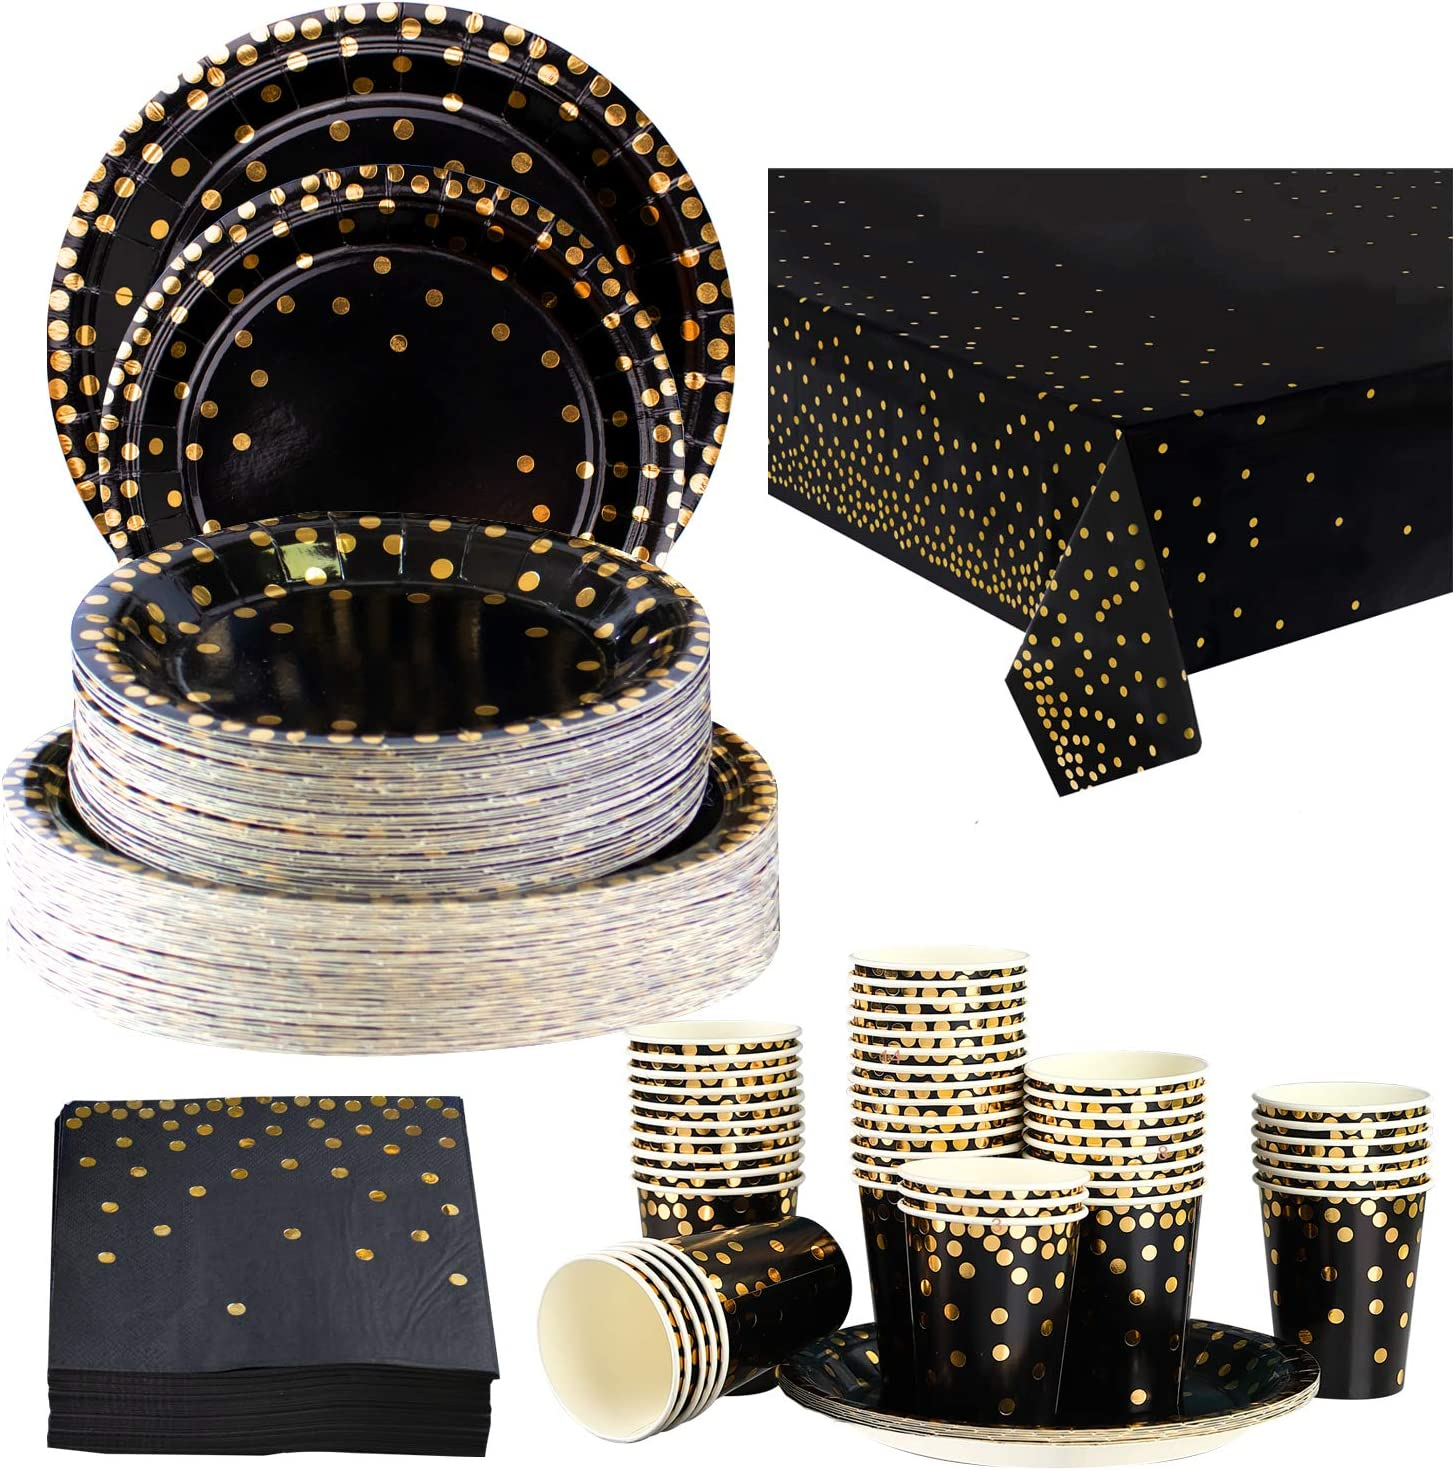 Serves 16 NEI Baby Shower Party Supplies Black Gold Party Tableware Set 114Pcs Disposable Plates Paper Cups Plates Napkins Banner Cake Topper for Baby Showers 1st Birthday Decorations